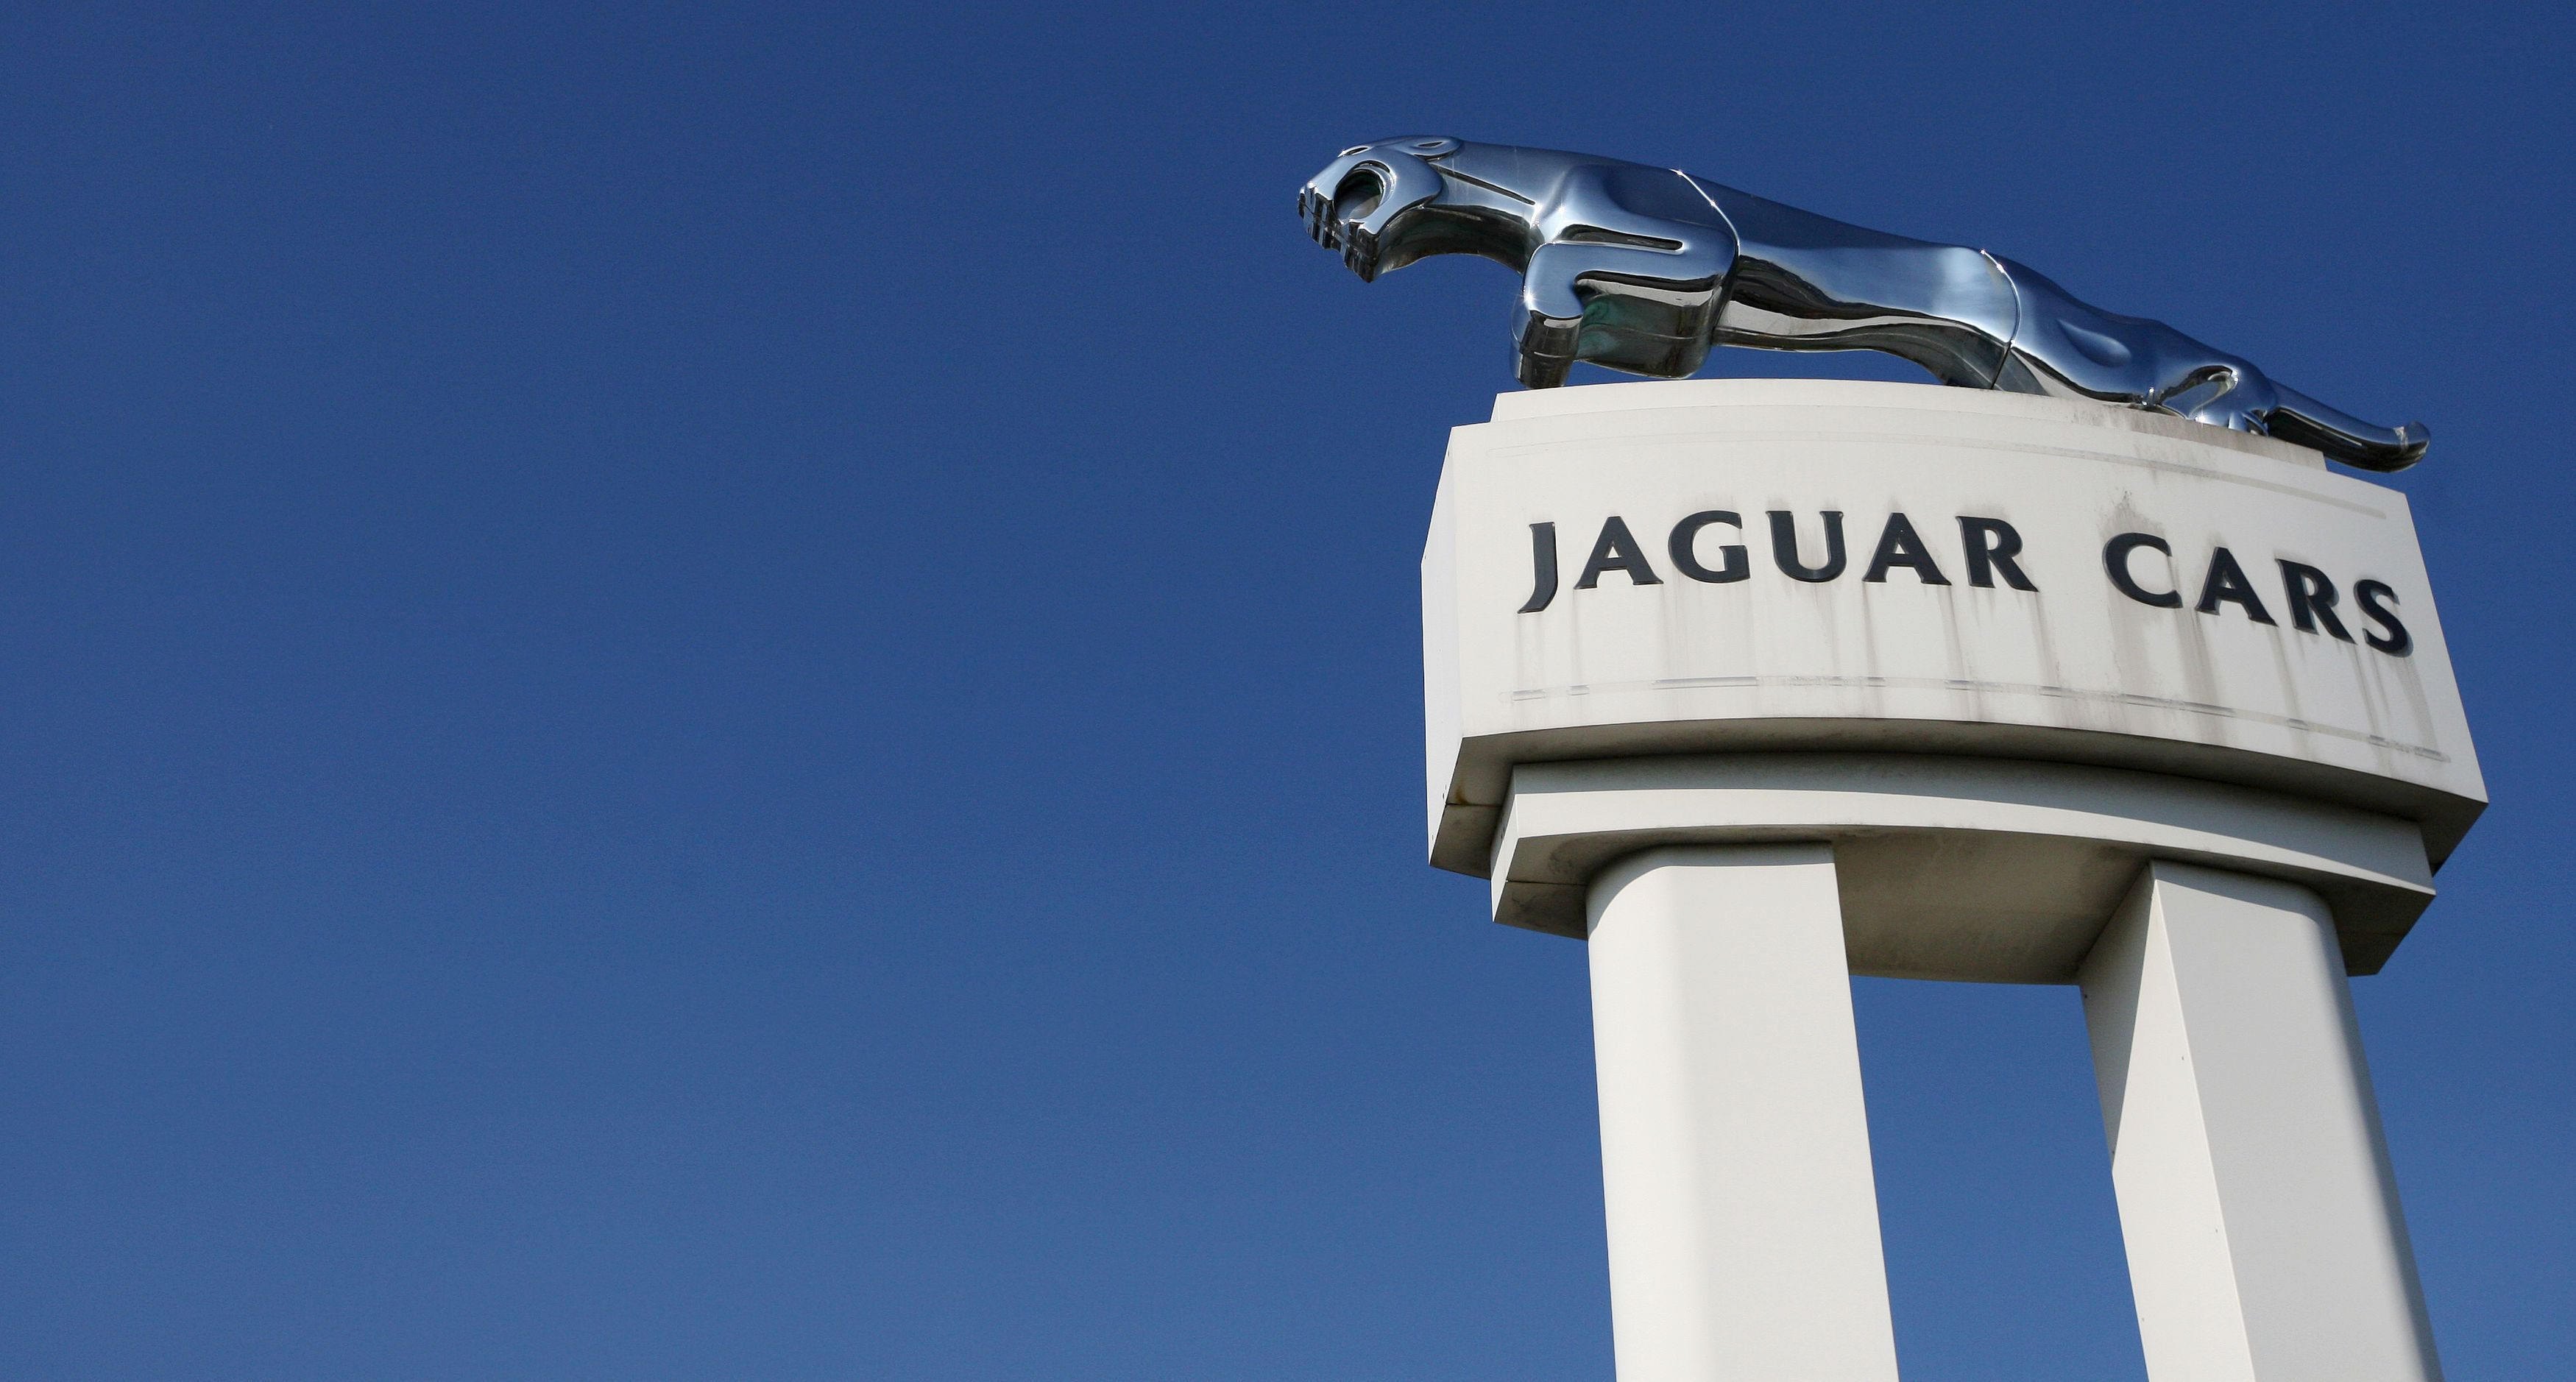 Jaguar Land Rover To Cut 5,000 Jobs Amid Brexit Concerns